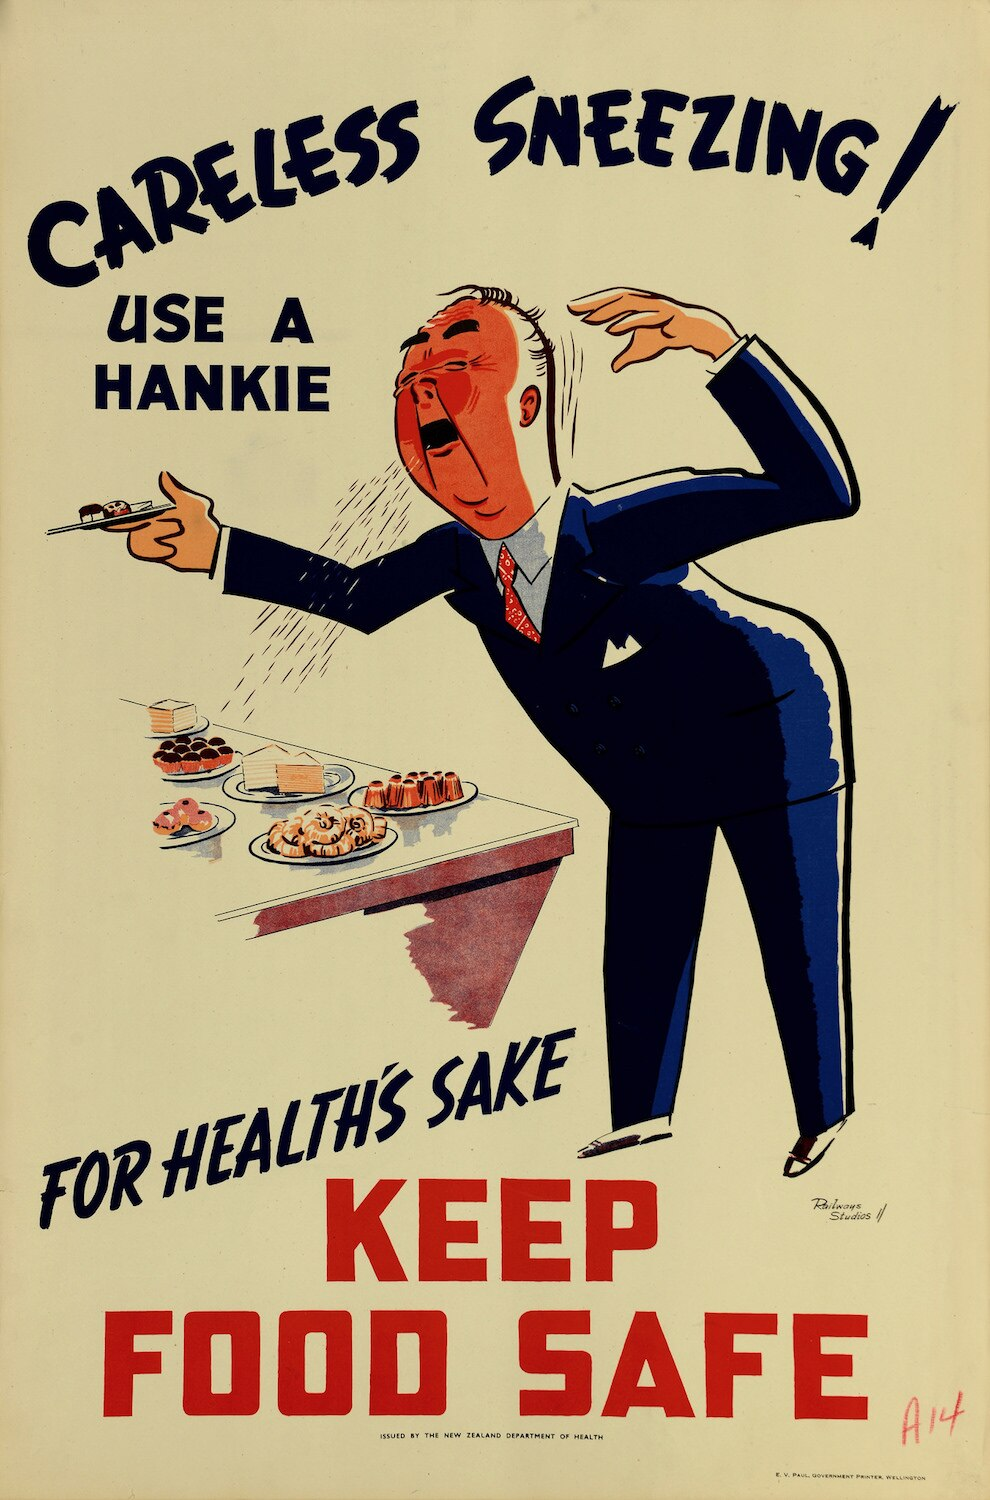 illustrational poster of a man sneezing over a table and onto plates of food